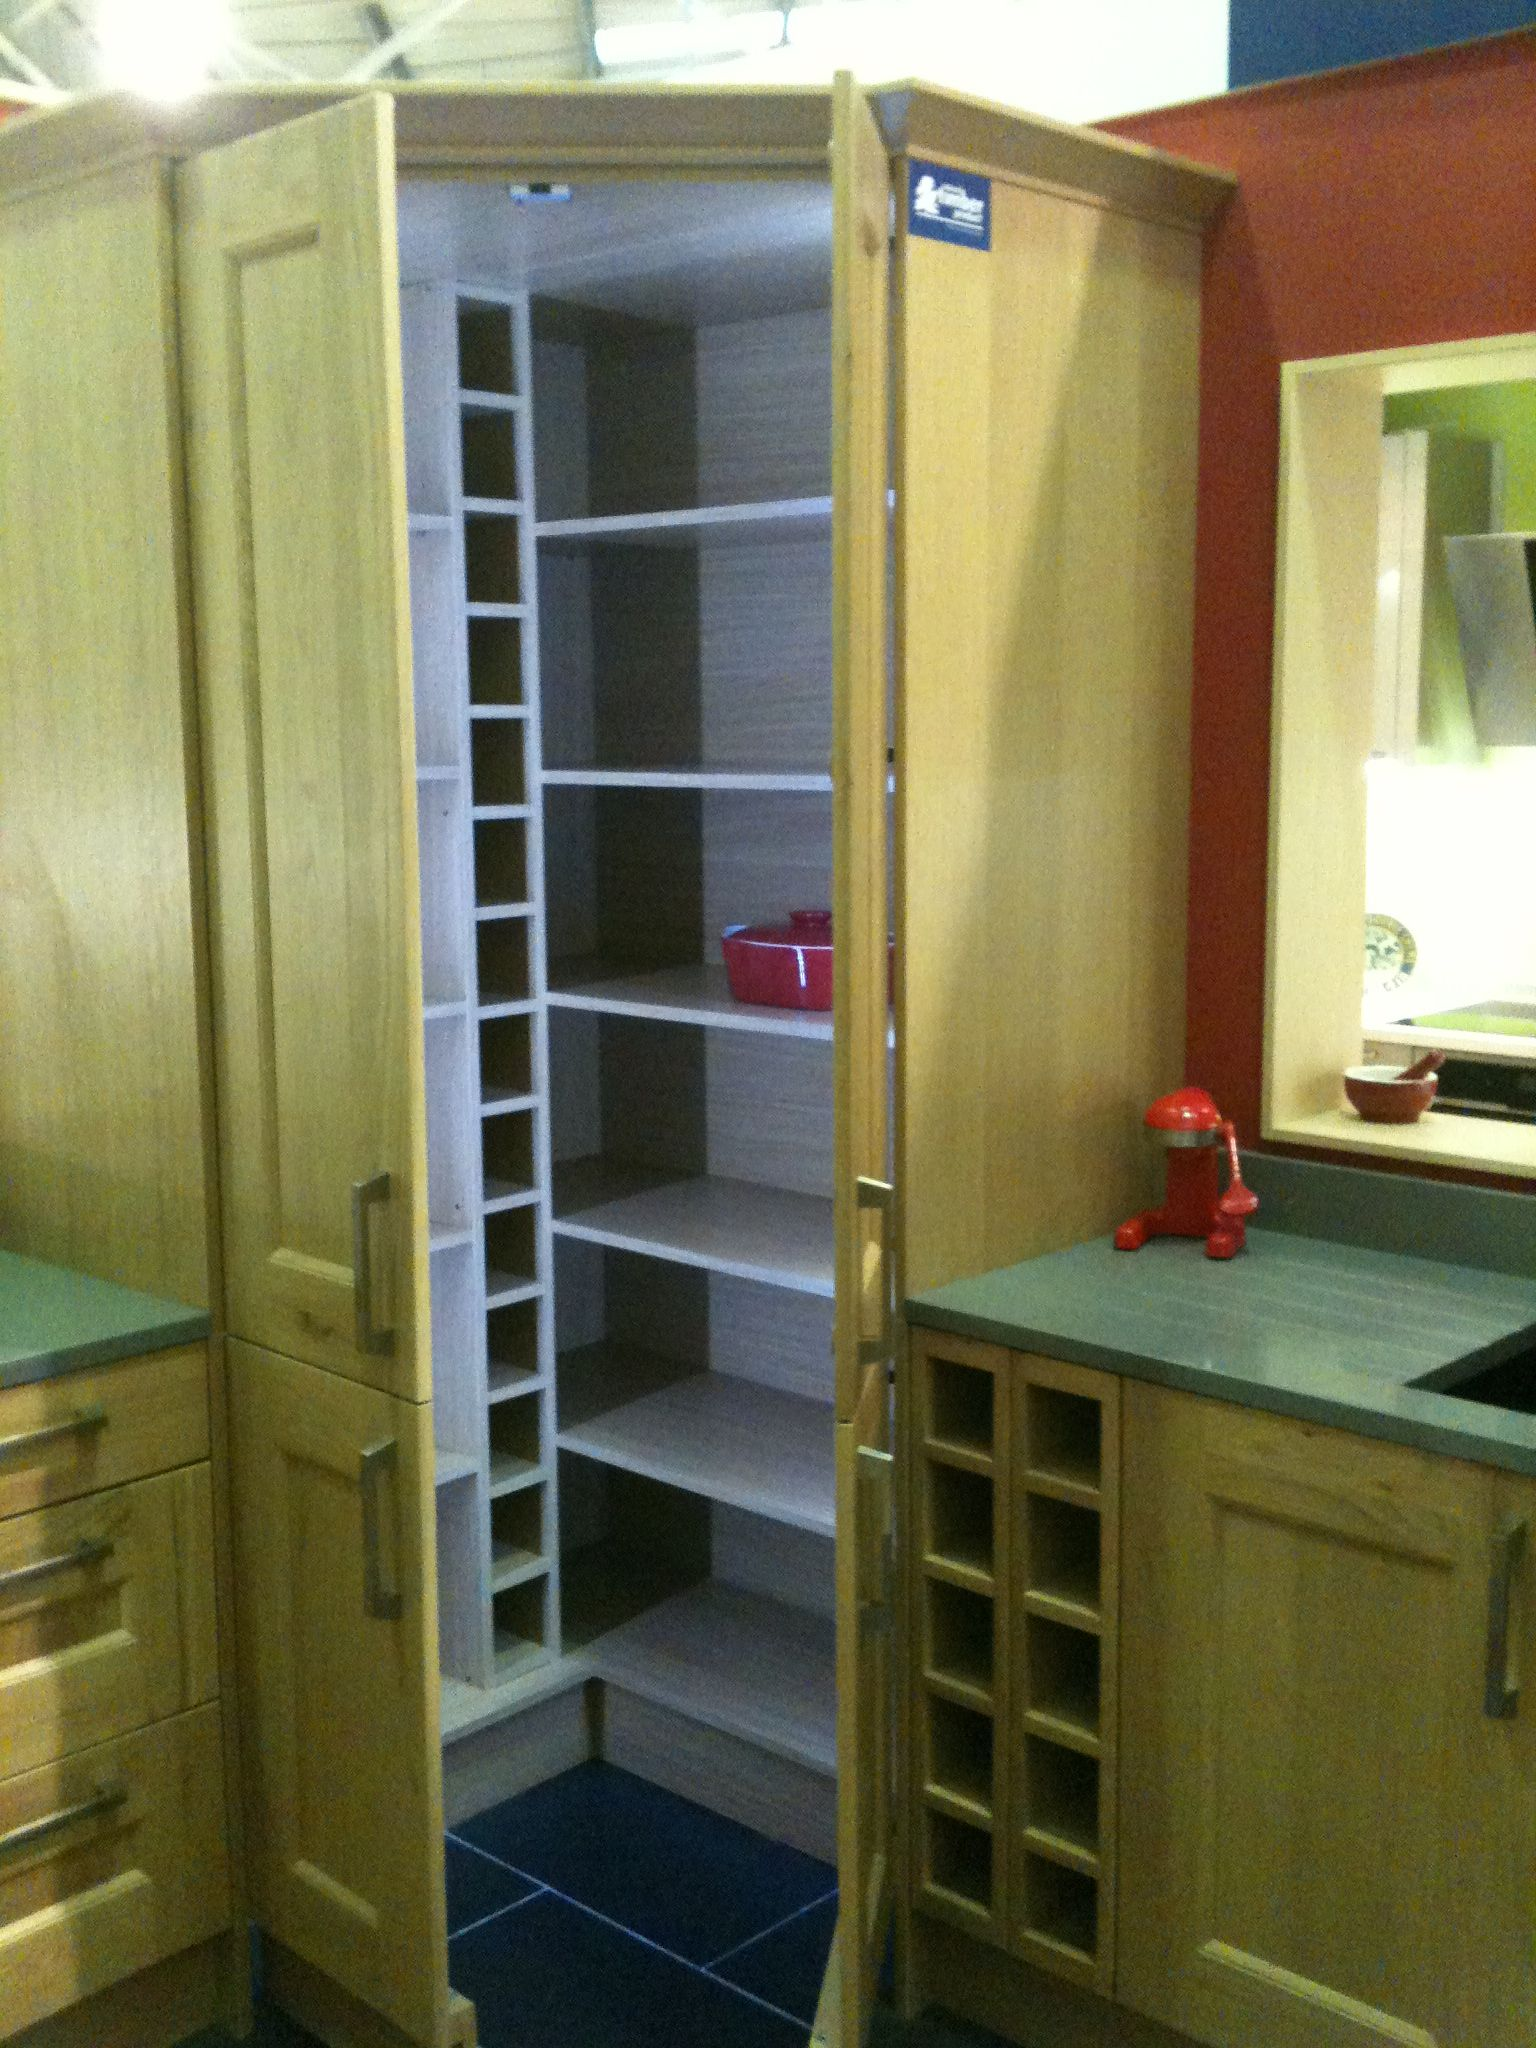 Wickes Kitchen Furniture Corner Pantry Wickes Hedge End Uk Wine Rack In Or Next To It